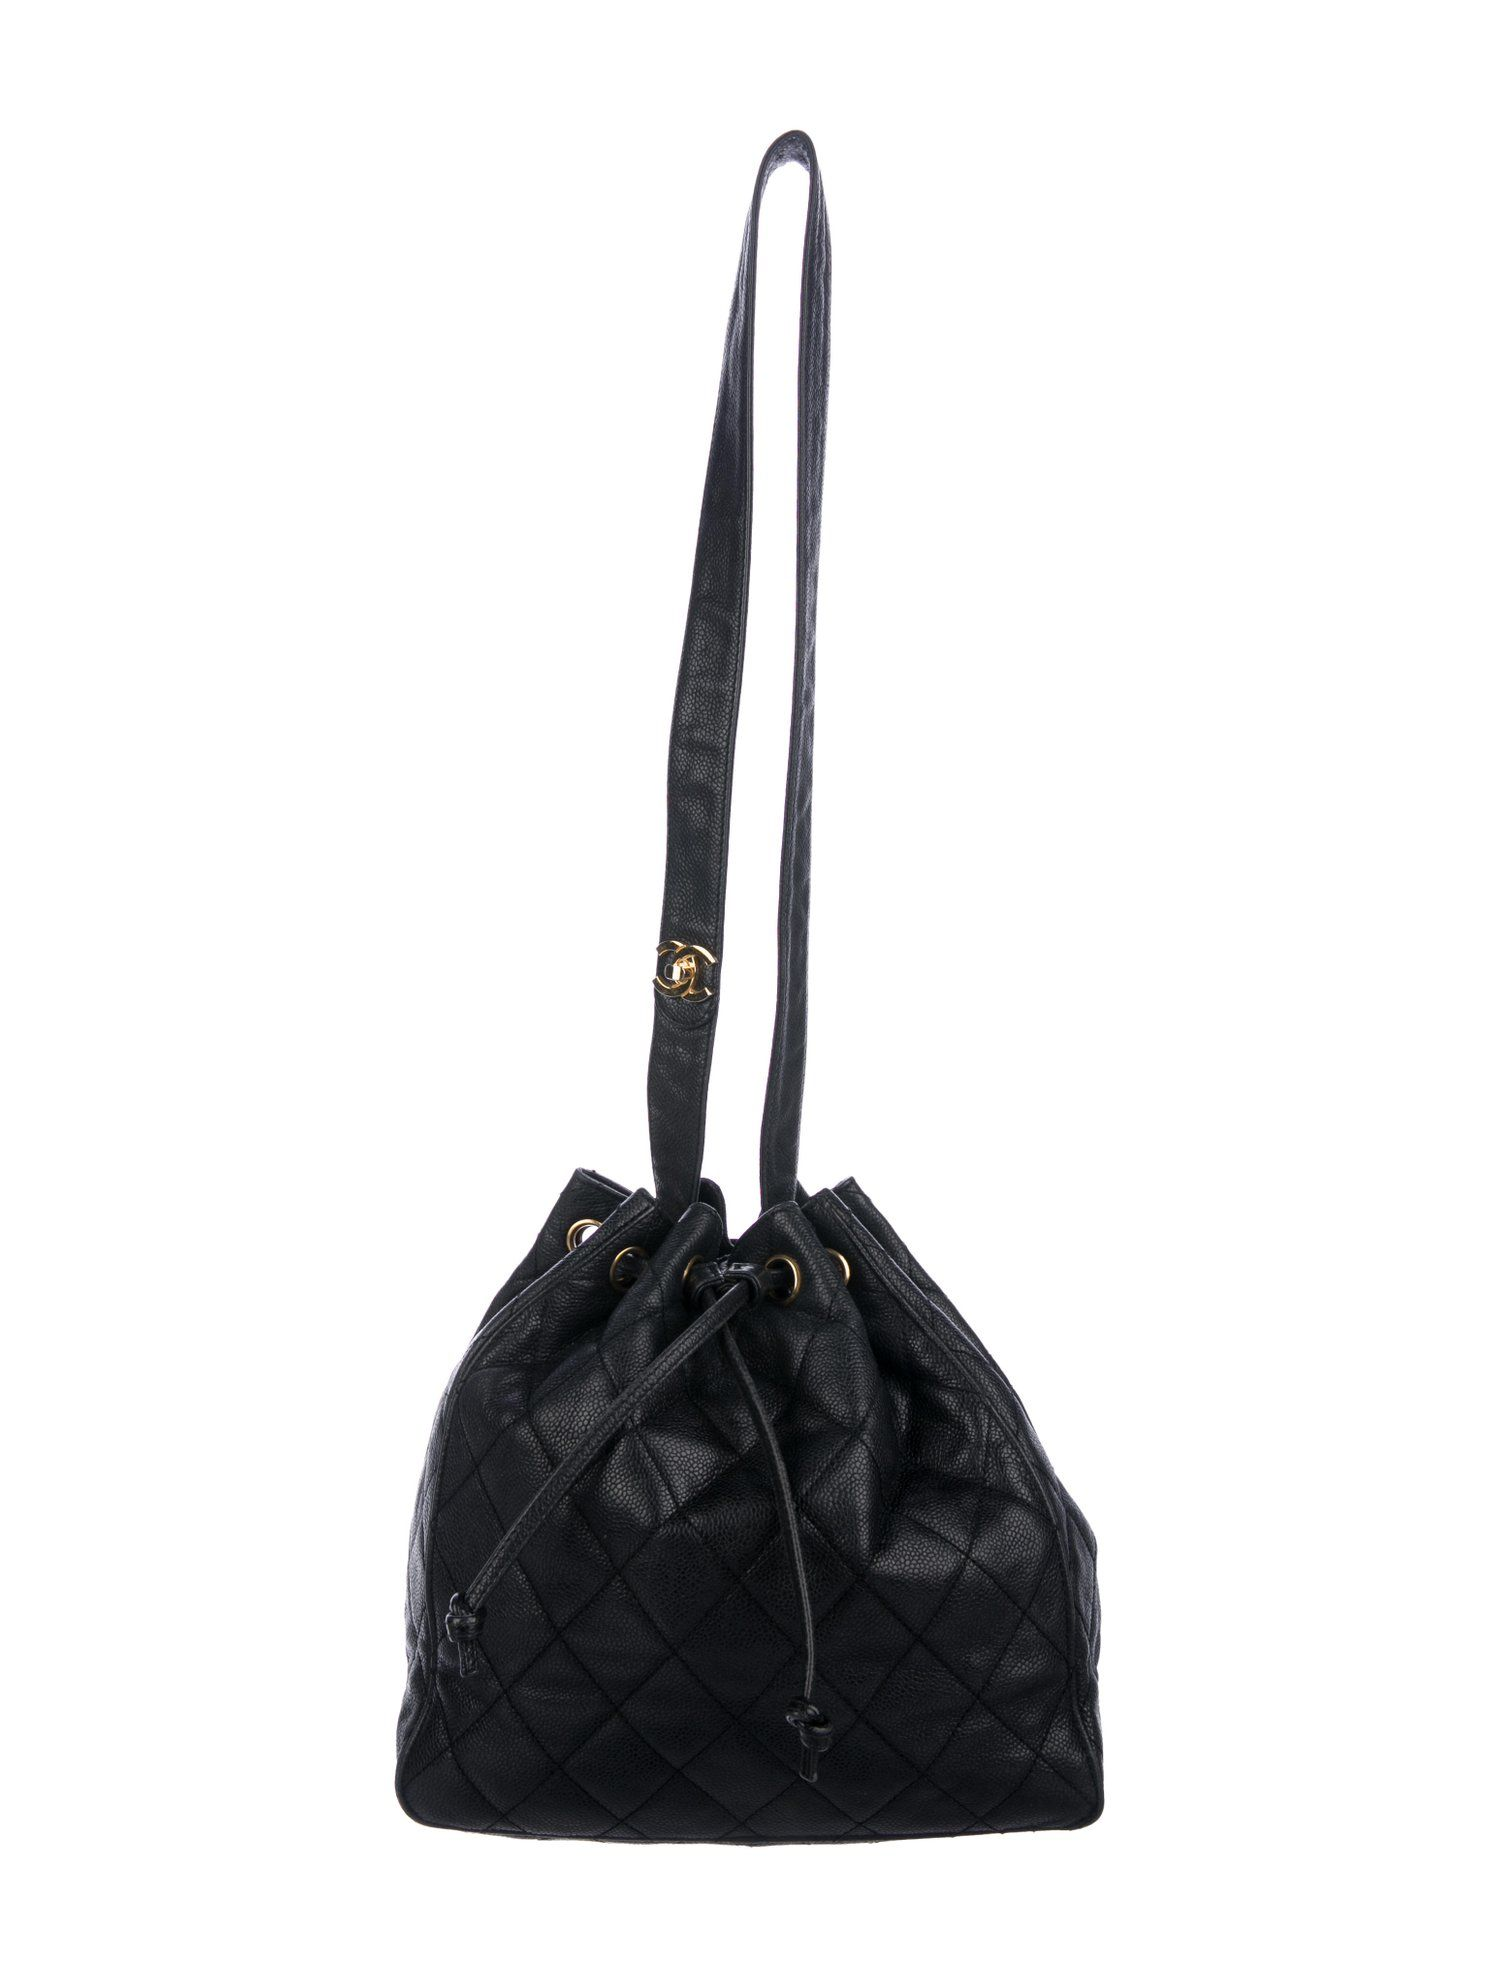 Chanel Vintage Quilted Caviar Bucket Bag Handbags Cha261067 The Realreal Bucket Bag Bags Vintage Chanel